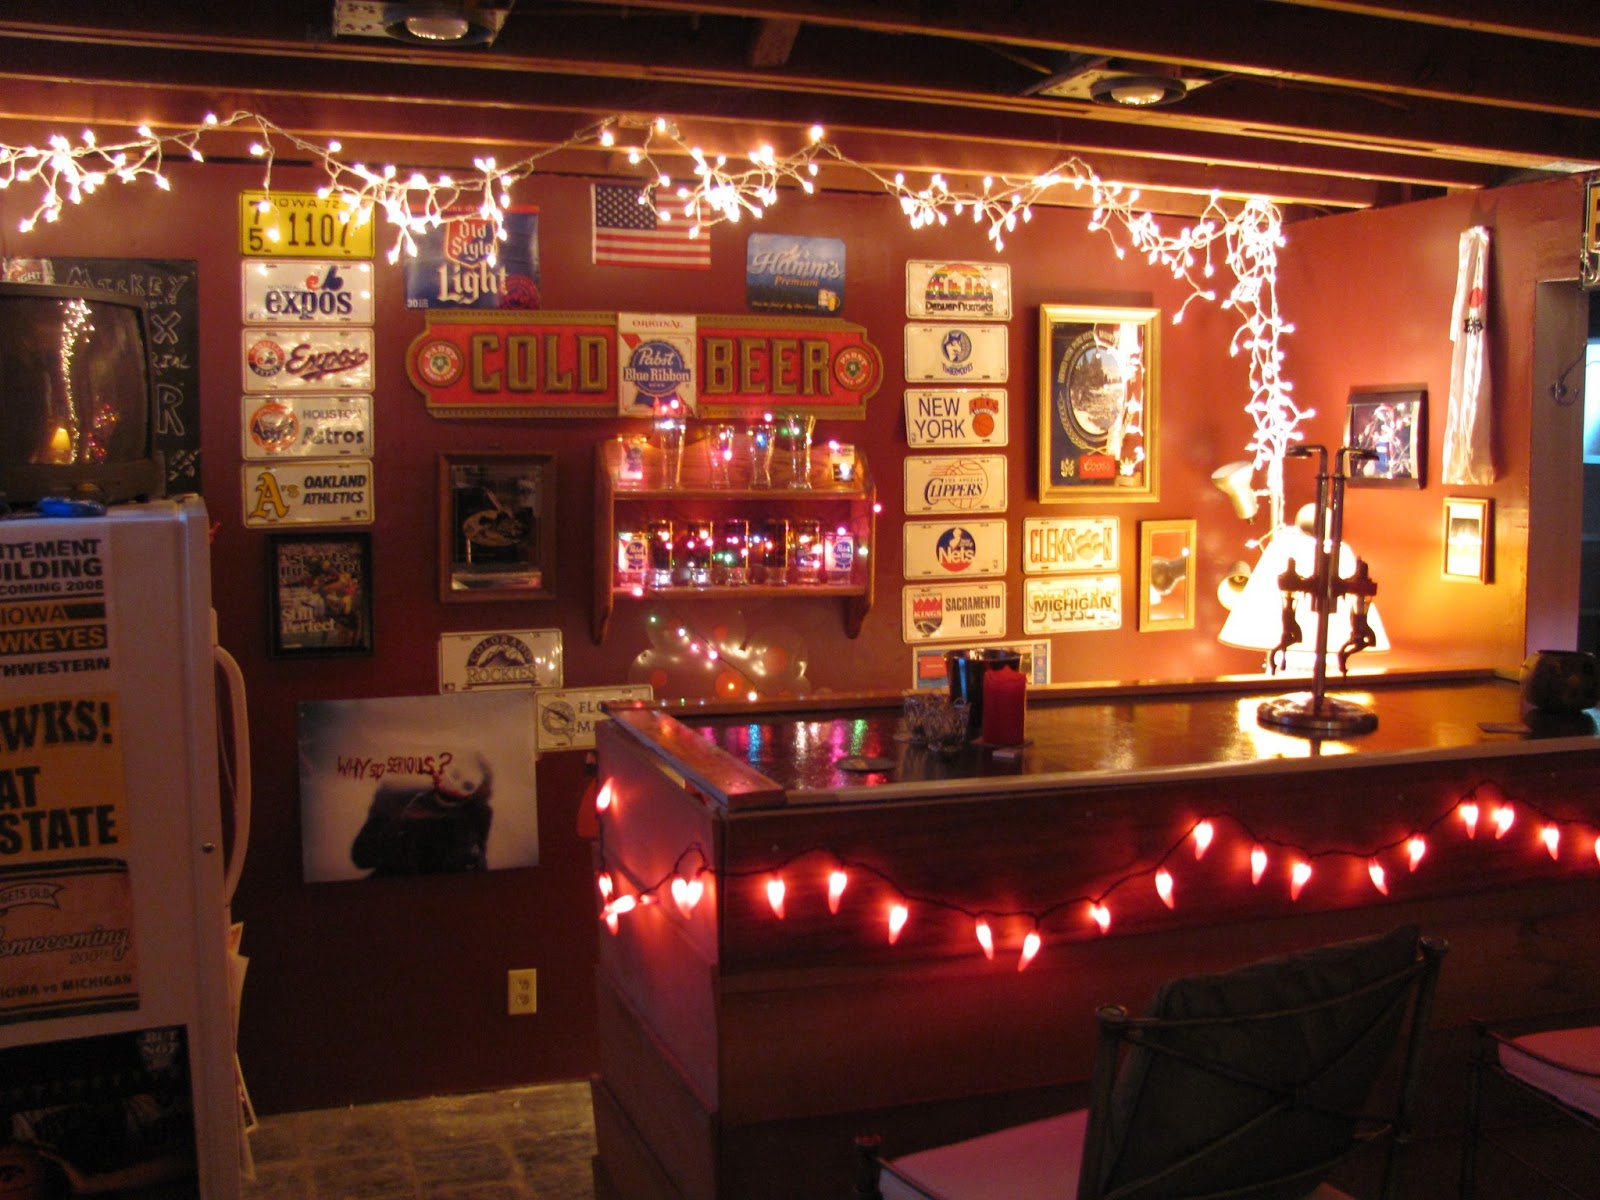 Shot of the basement bar and back wall in full splendor.  Christmas lights glow and signs cover the walls